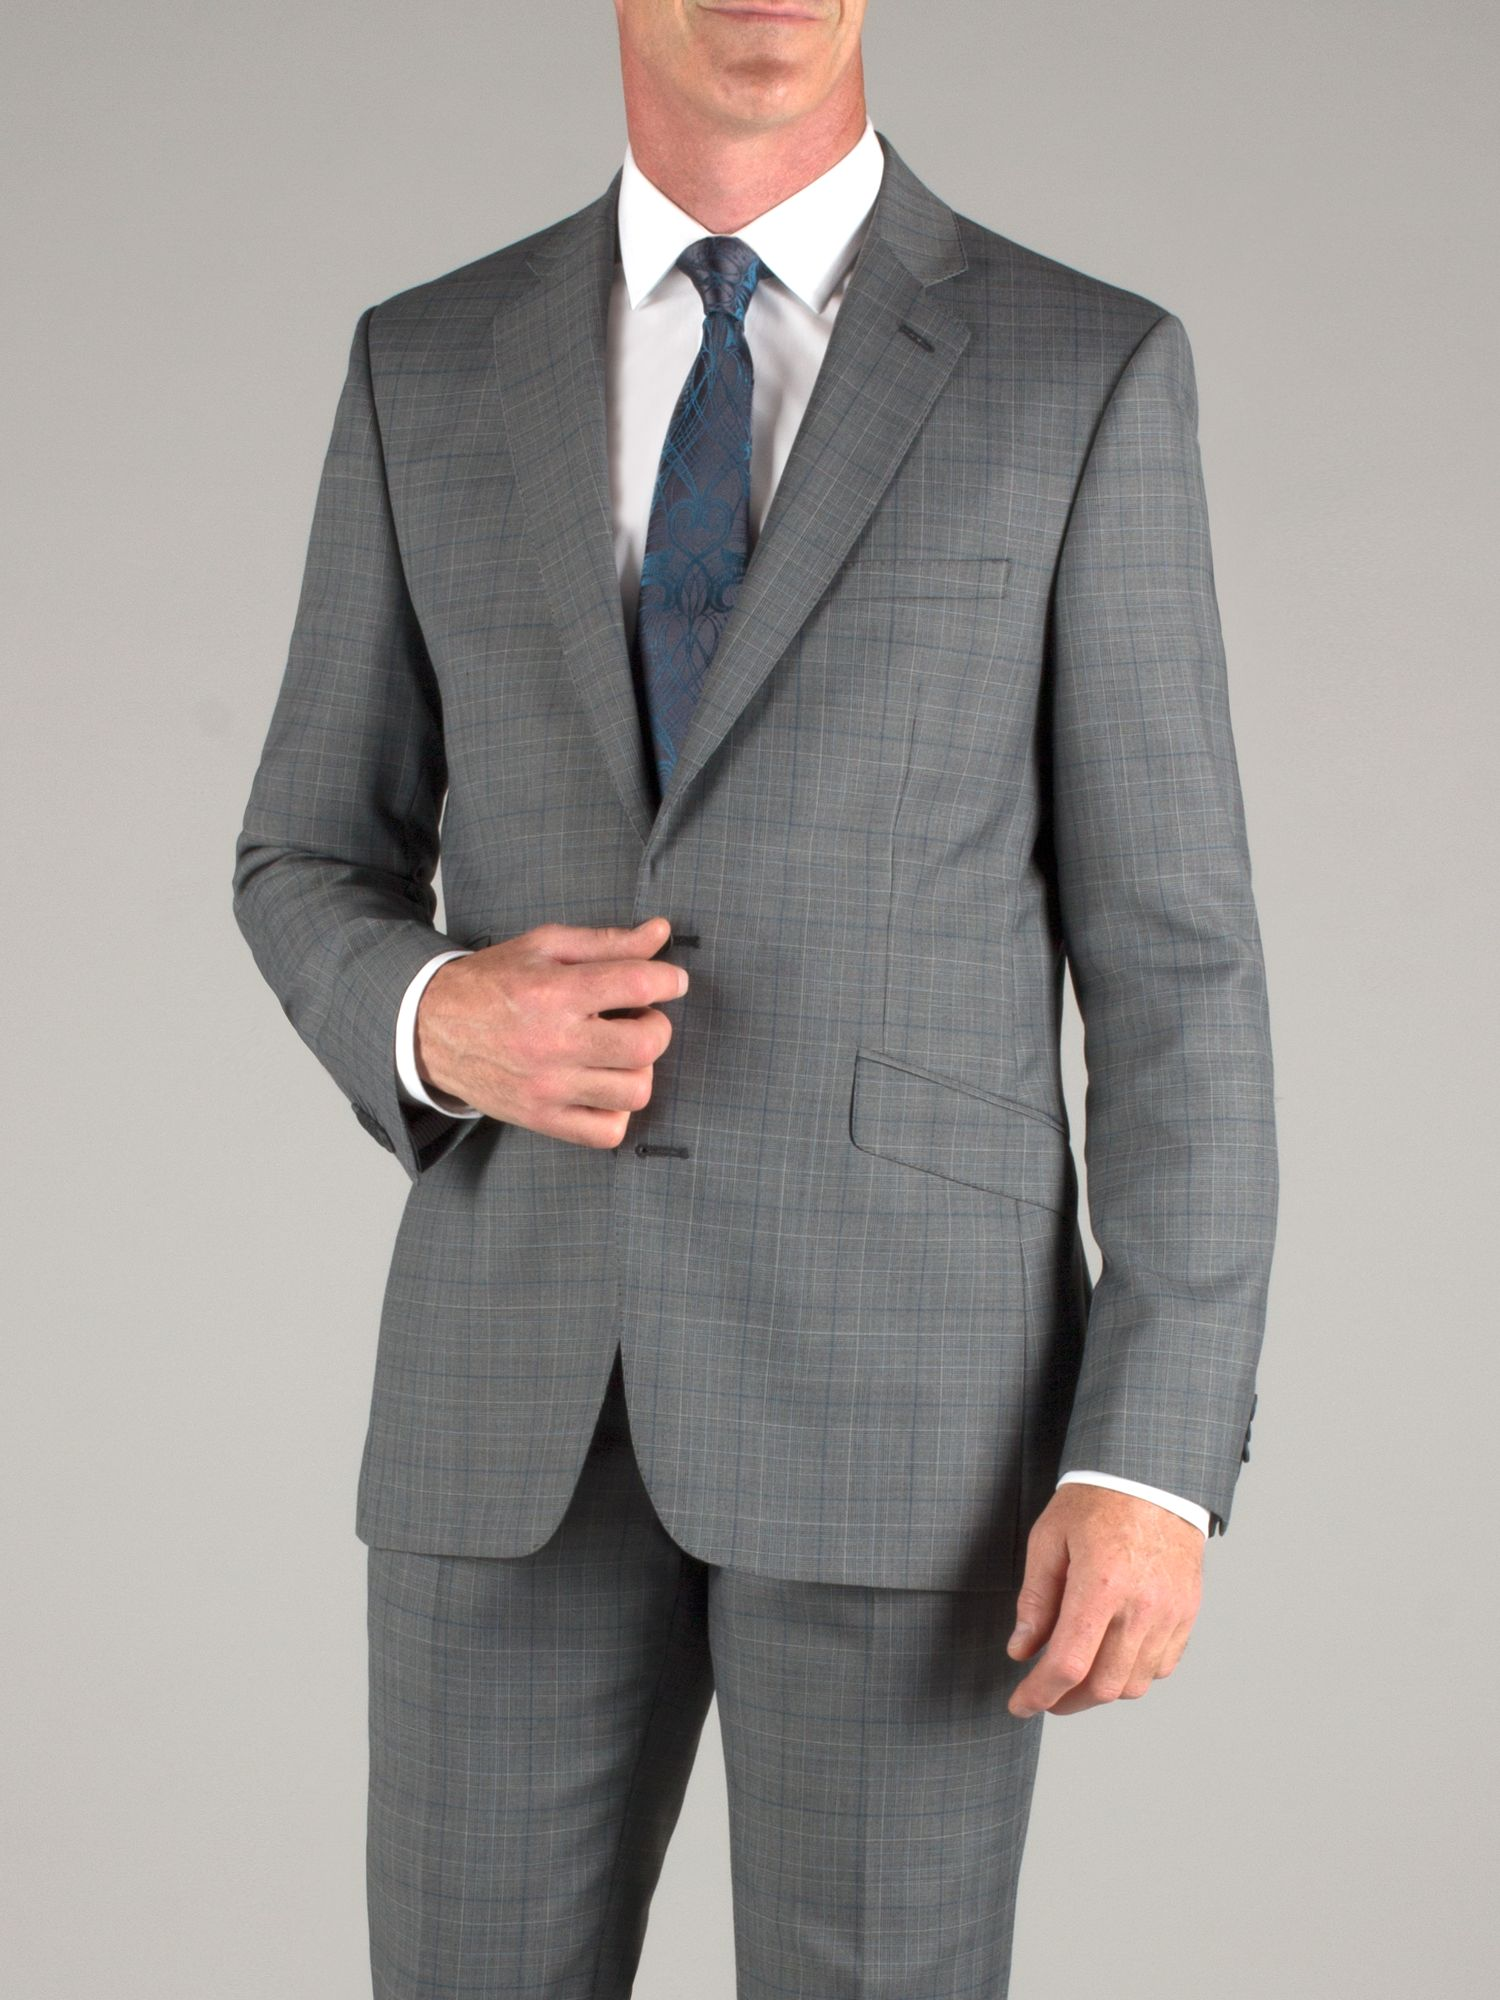 Grey teal check jacket